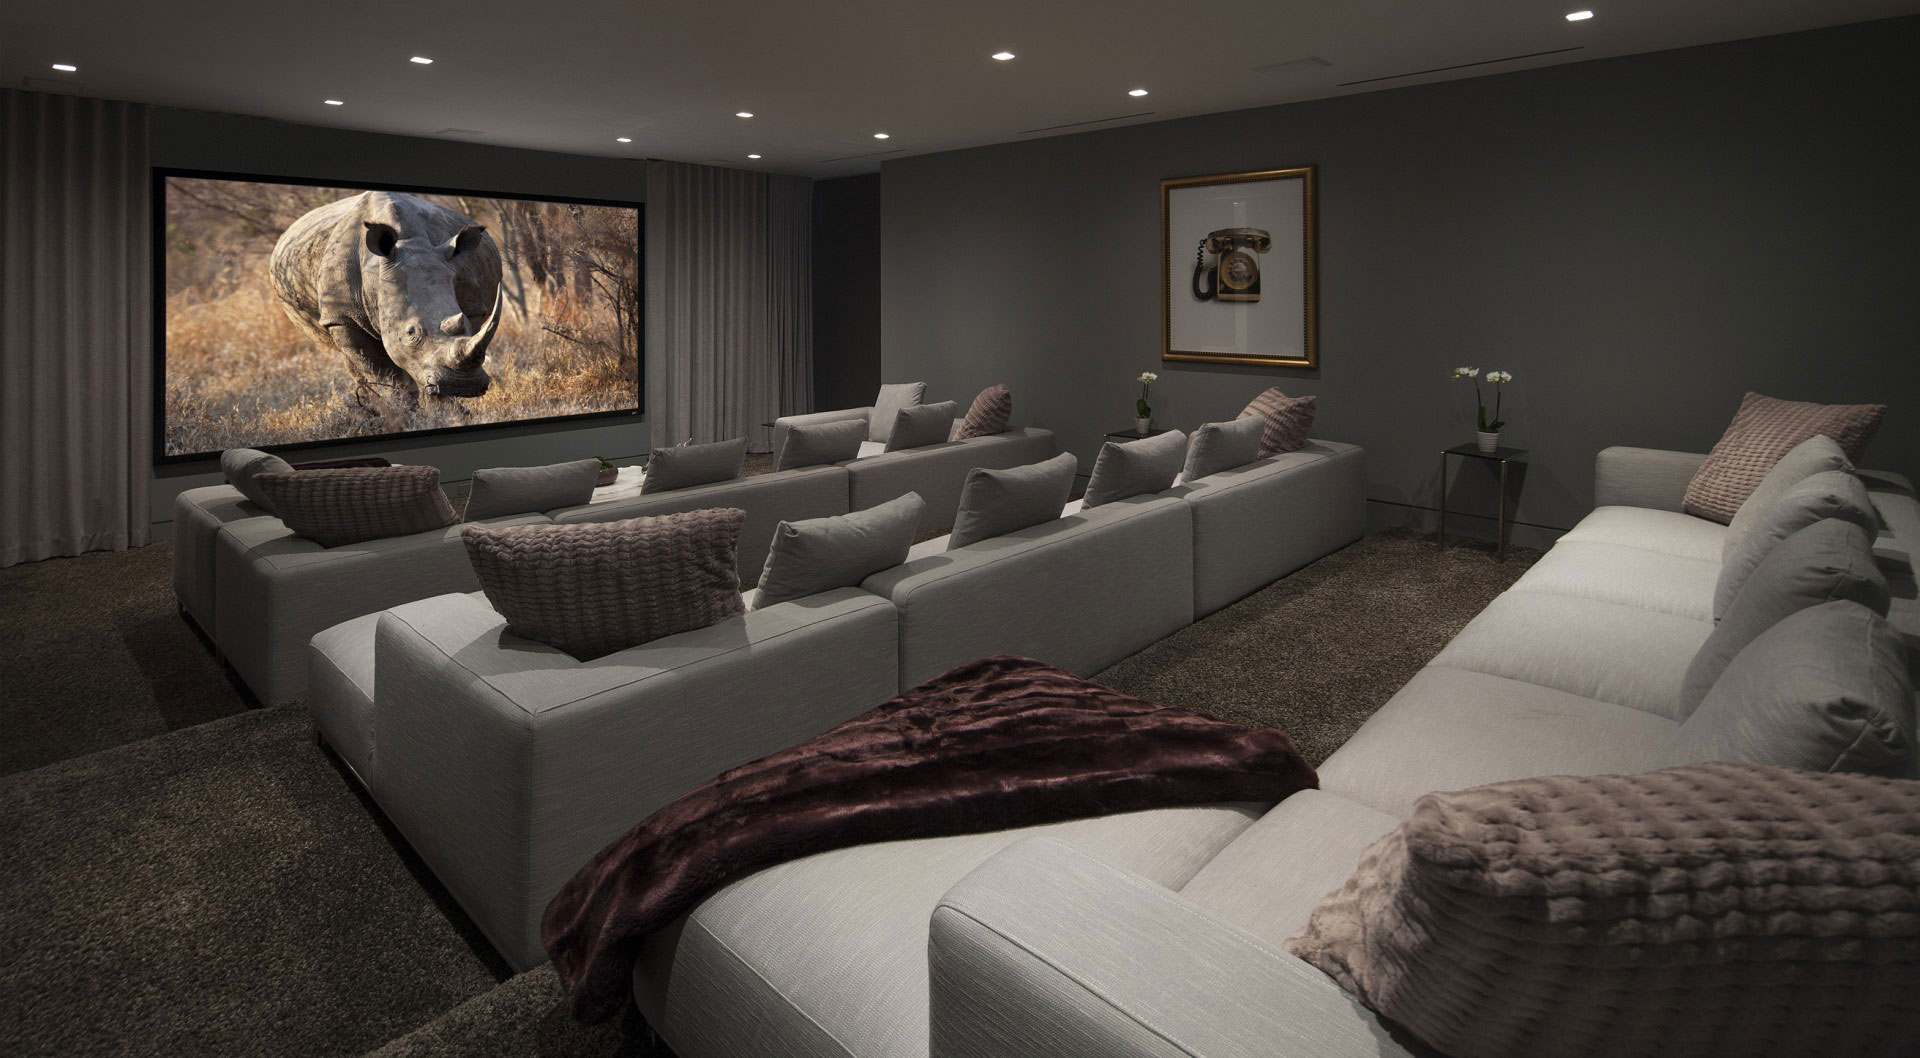 Home Theater System Delhi NCR | Home Theater Designing | Home Theater  Solutions Delhi | Home Theater In Delhi |Home Theater Automation